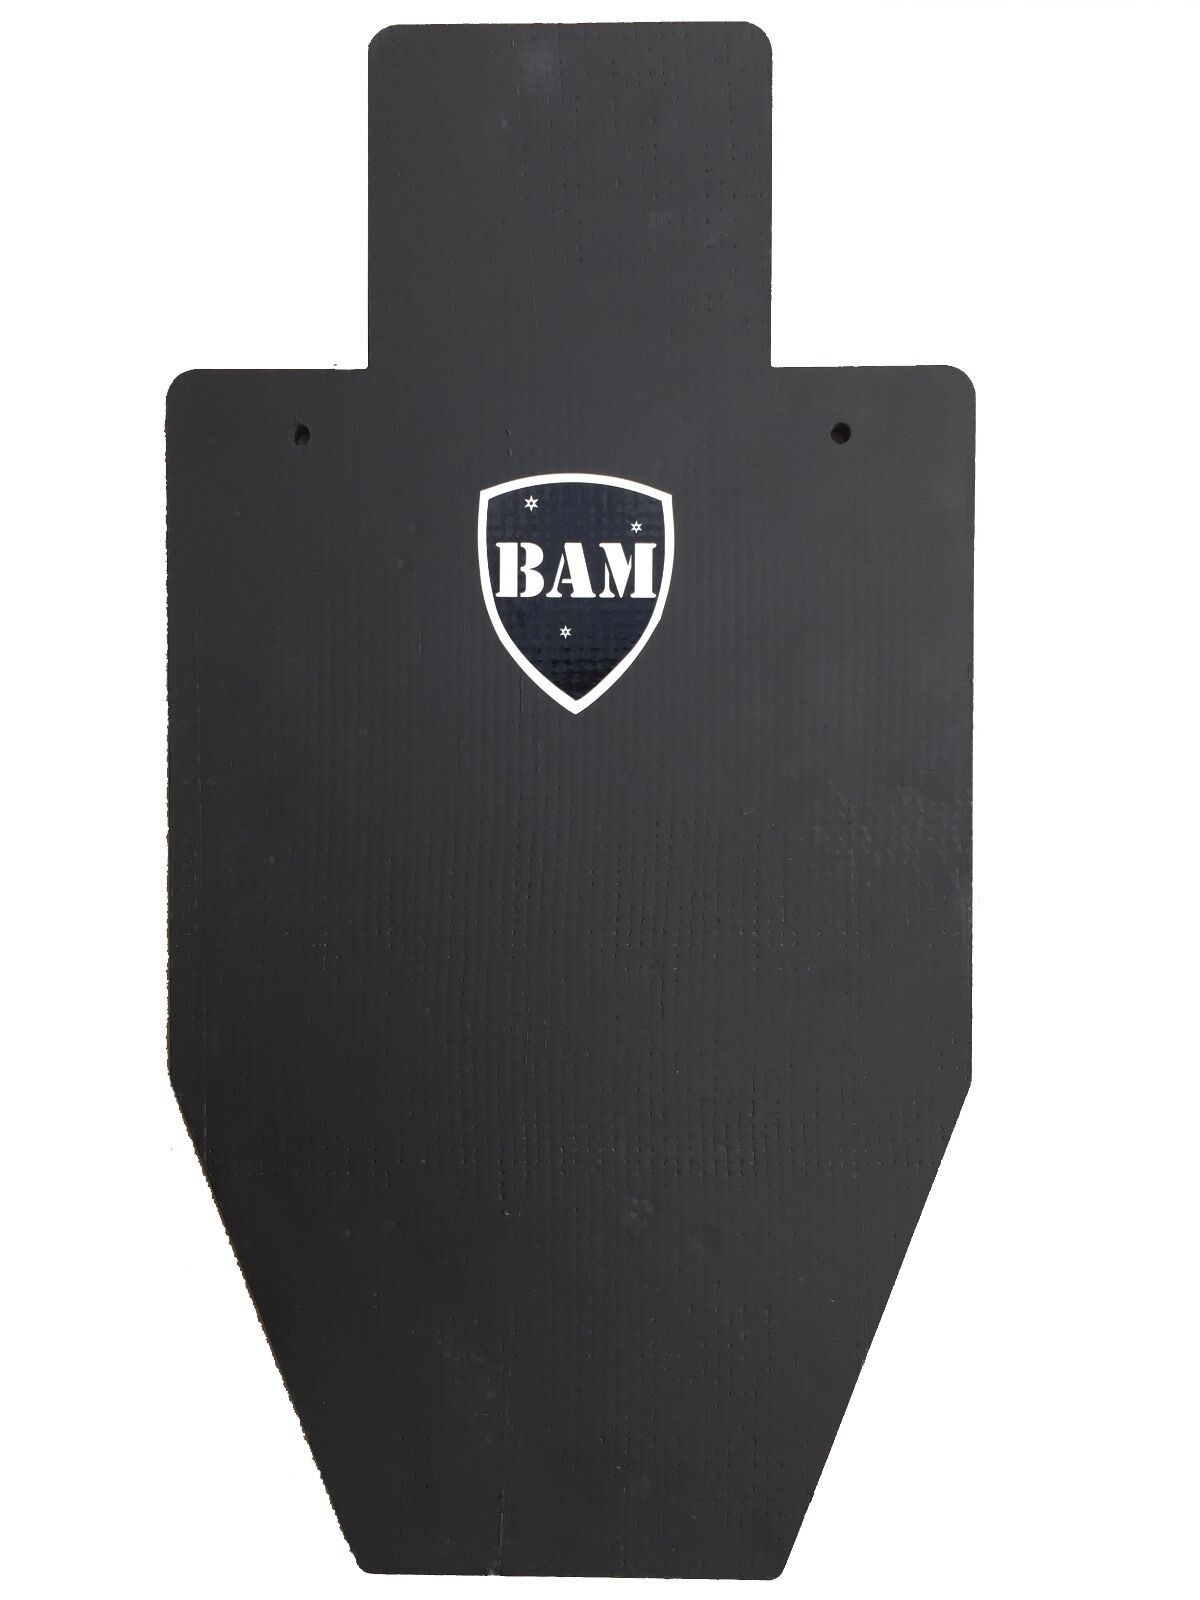 BALLISTIC SHIELD   Bullet Proof   Body Armor Level IIIA+ L3A+ 12x23 STOPS 44 MAG